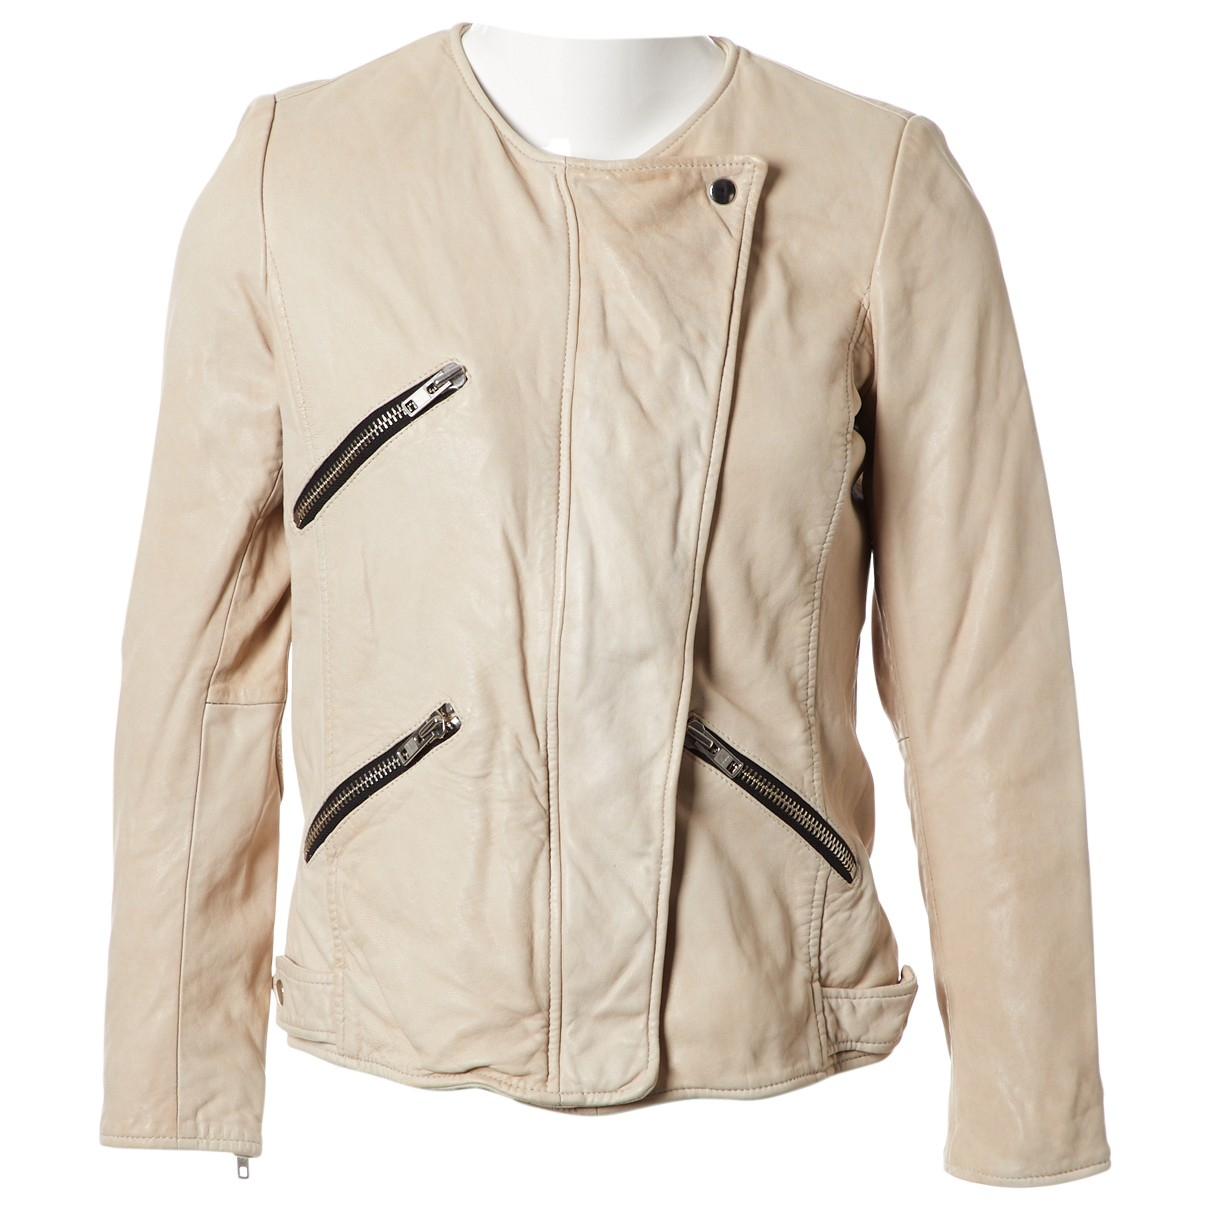 Isabel Marant \N Beige Leather jacket for Women 36 FR